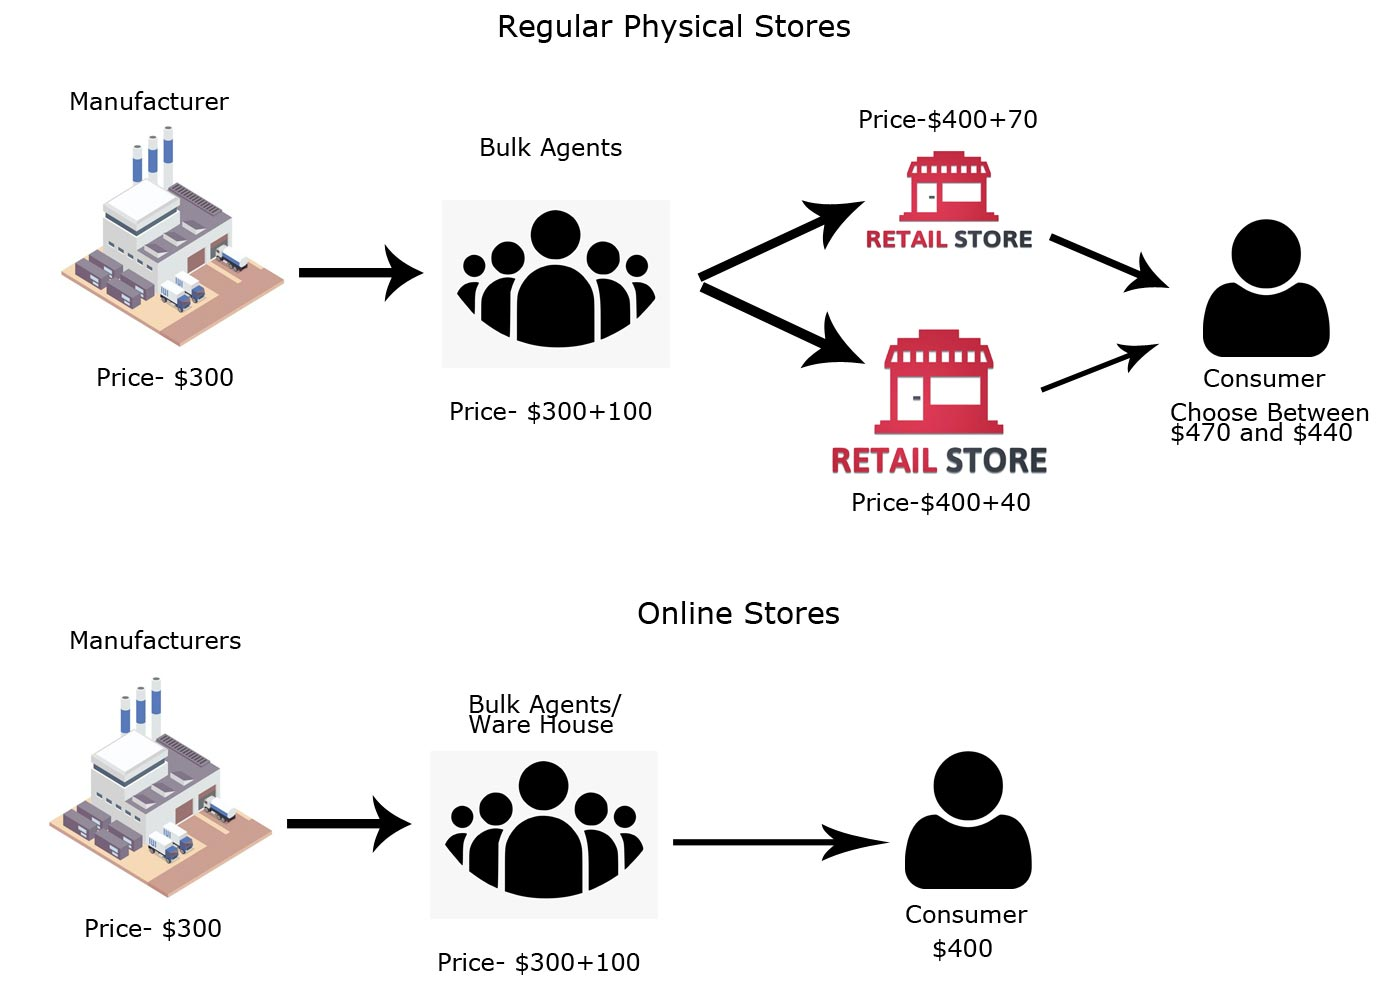 Regular Physical Stores vs. Online Store Peocess